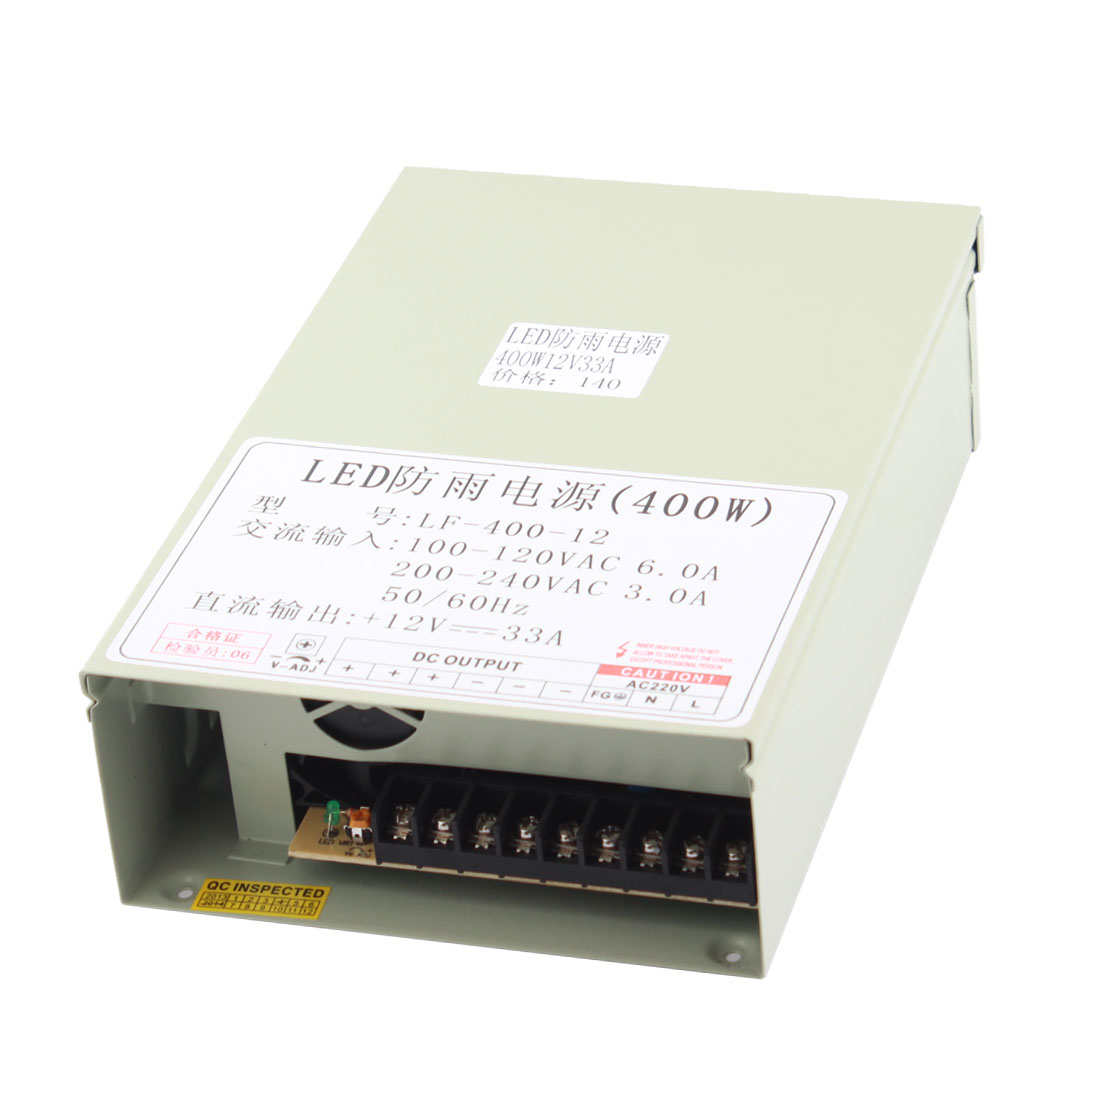 AC 100-120V to DC 12V 33A 400W Switching Power Supply for LED Strip Light